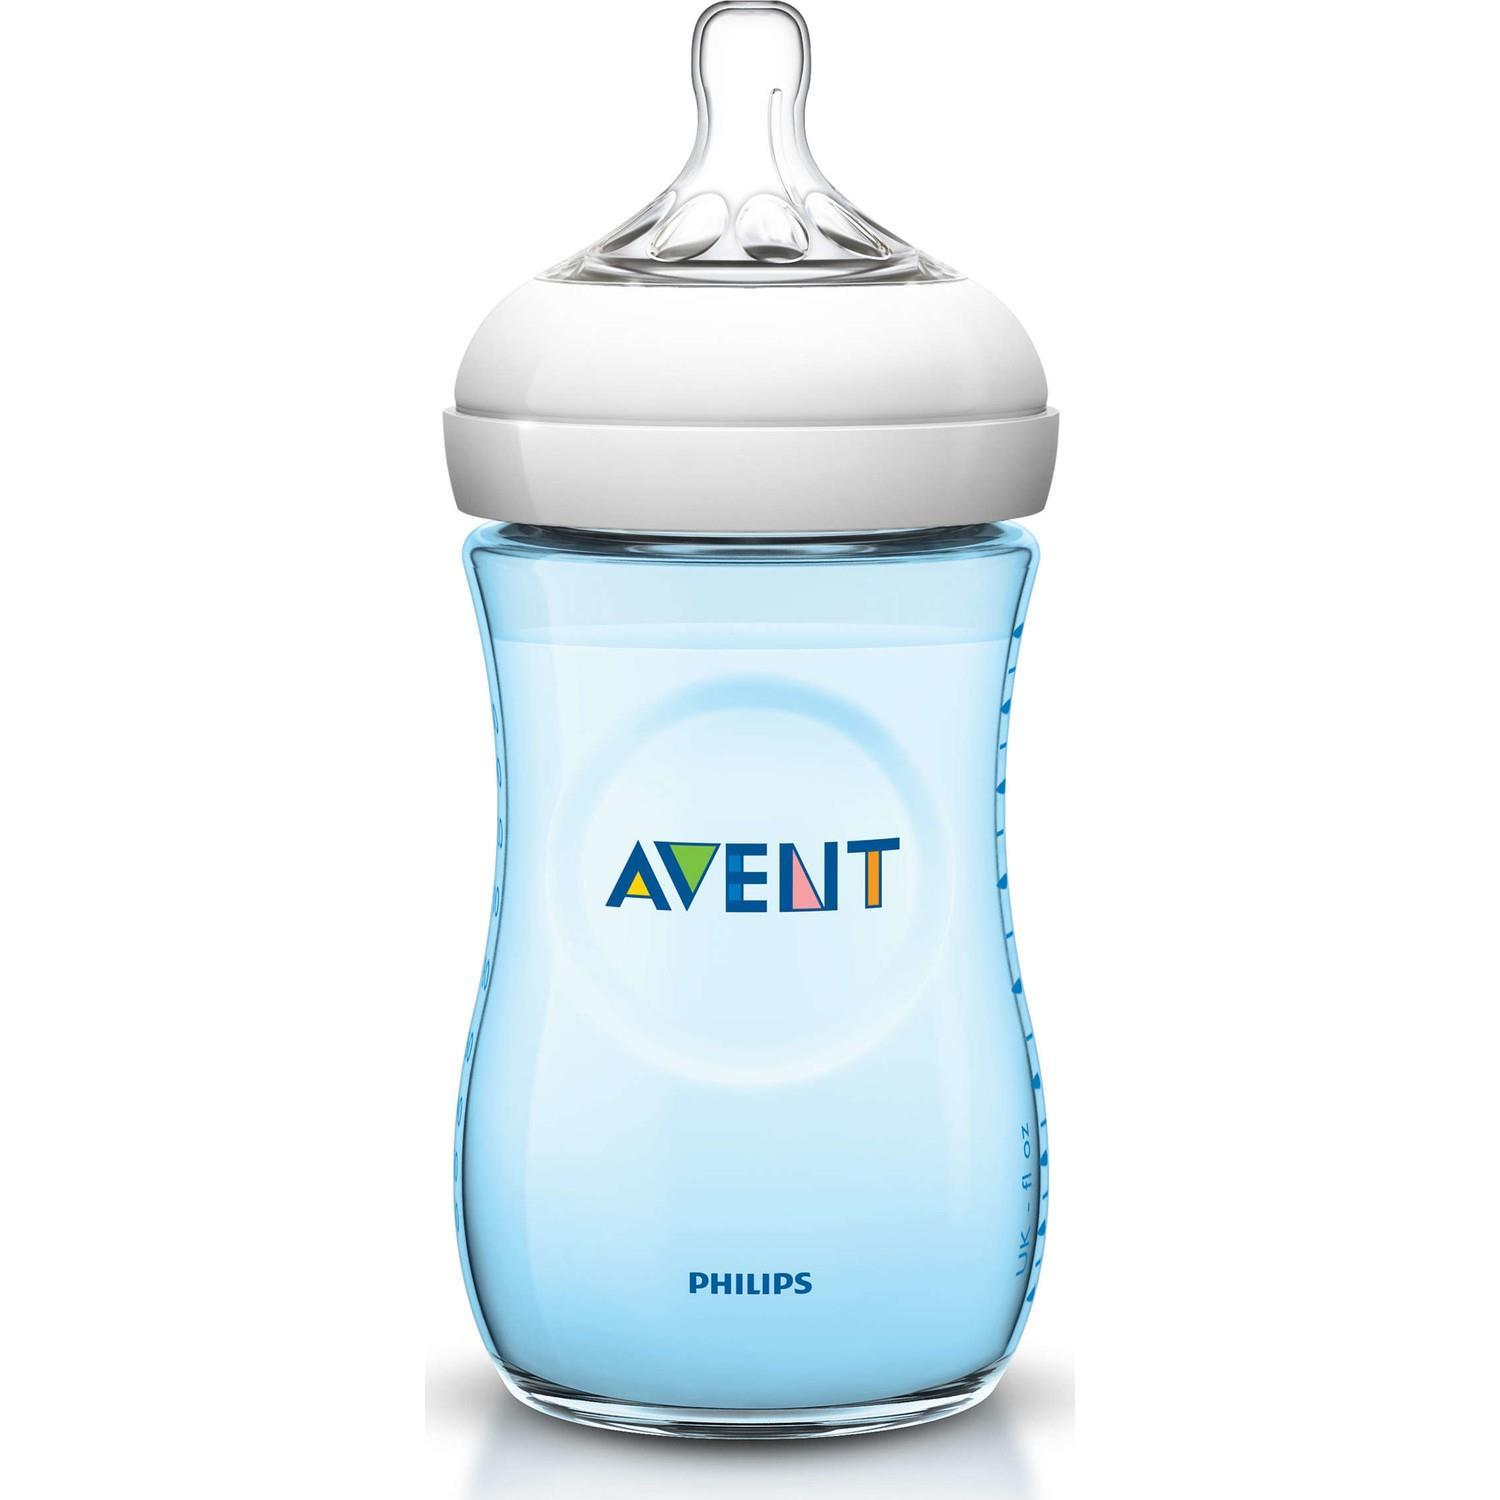 Philips Avent Natural Pp Biberon 260 Ml Mavi 53189 - Philips Avent Natural Pp Biberon 260 Ml Mavi